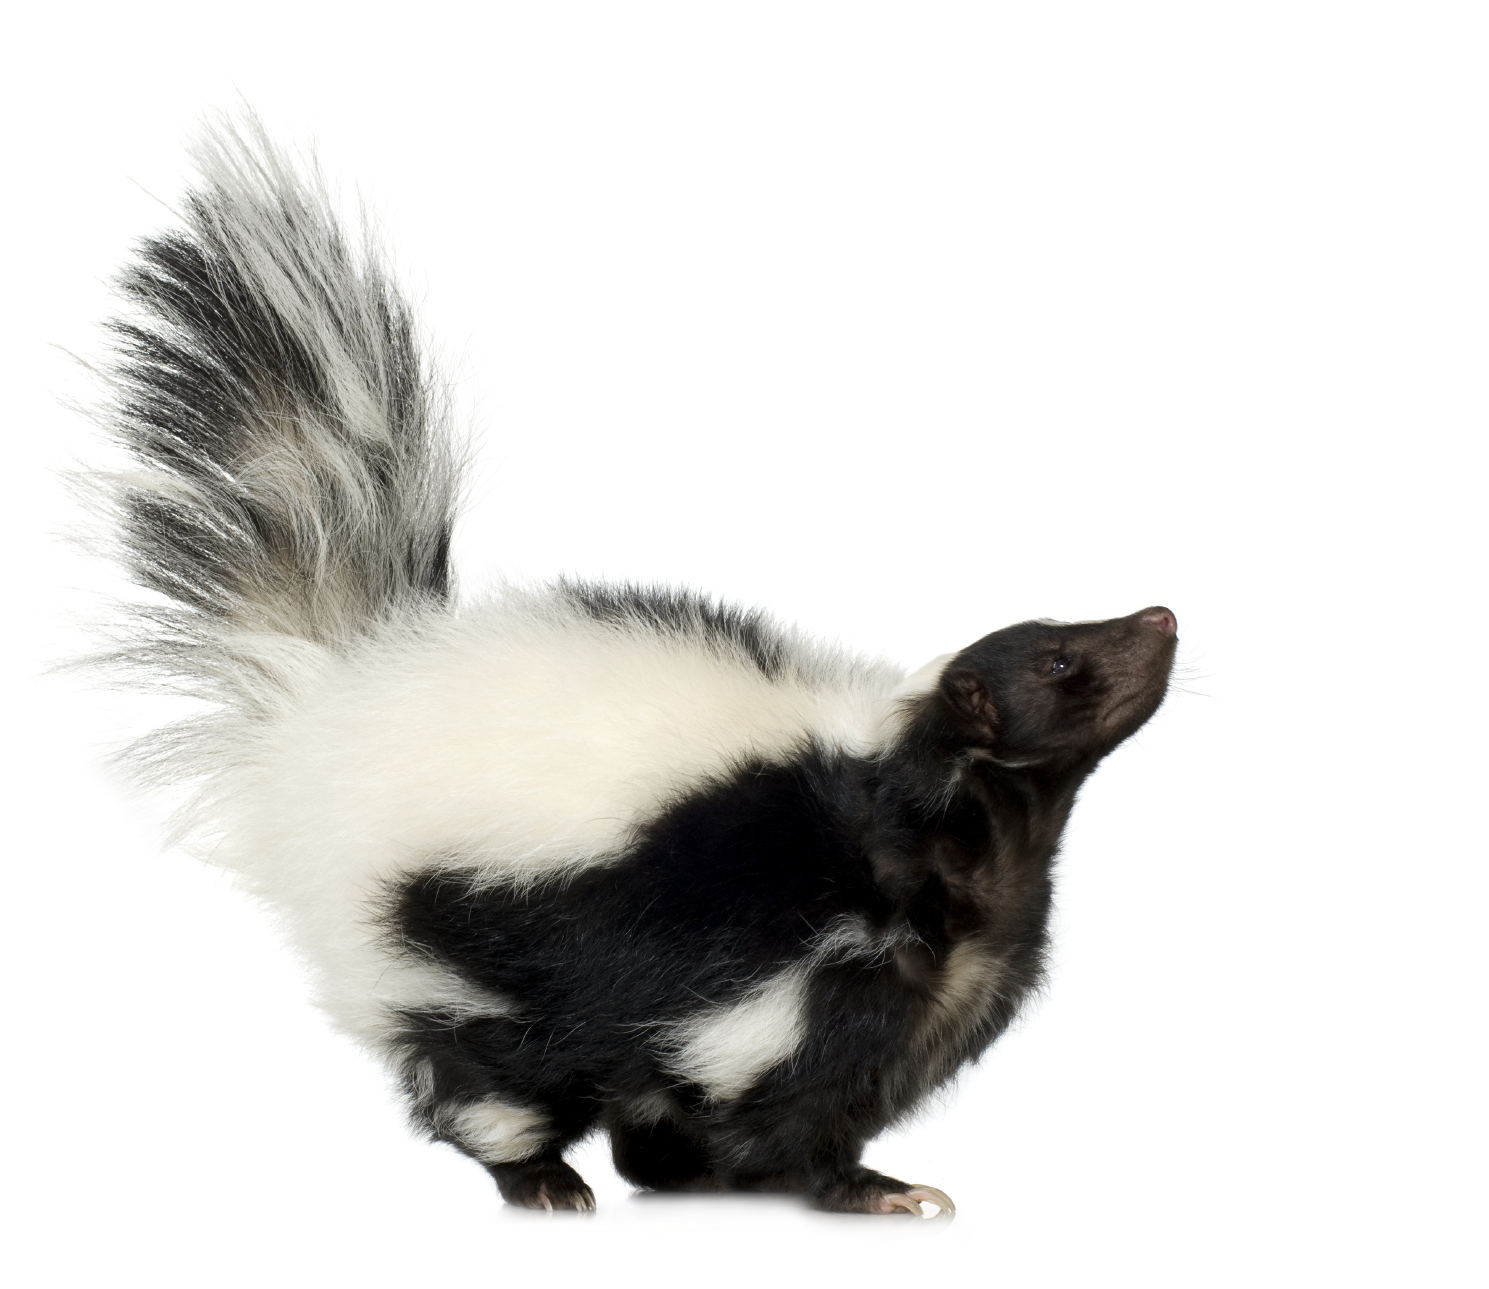 Jpg 1489x1289 Skunk With Transparent Bac #26239.